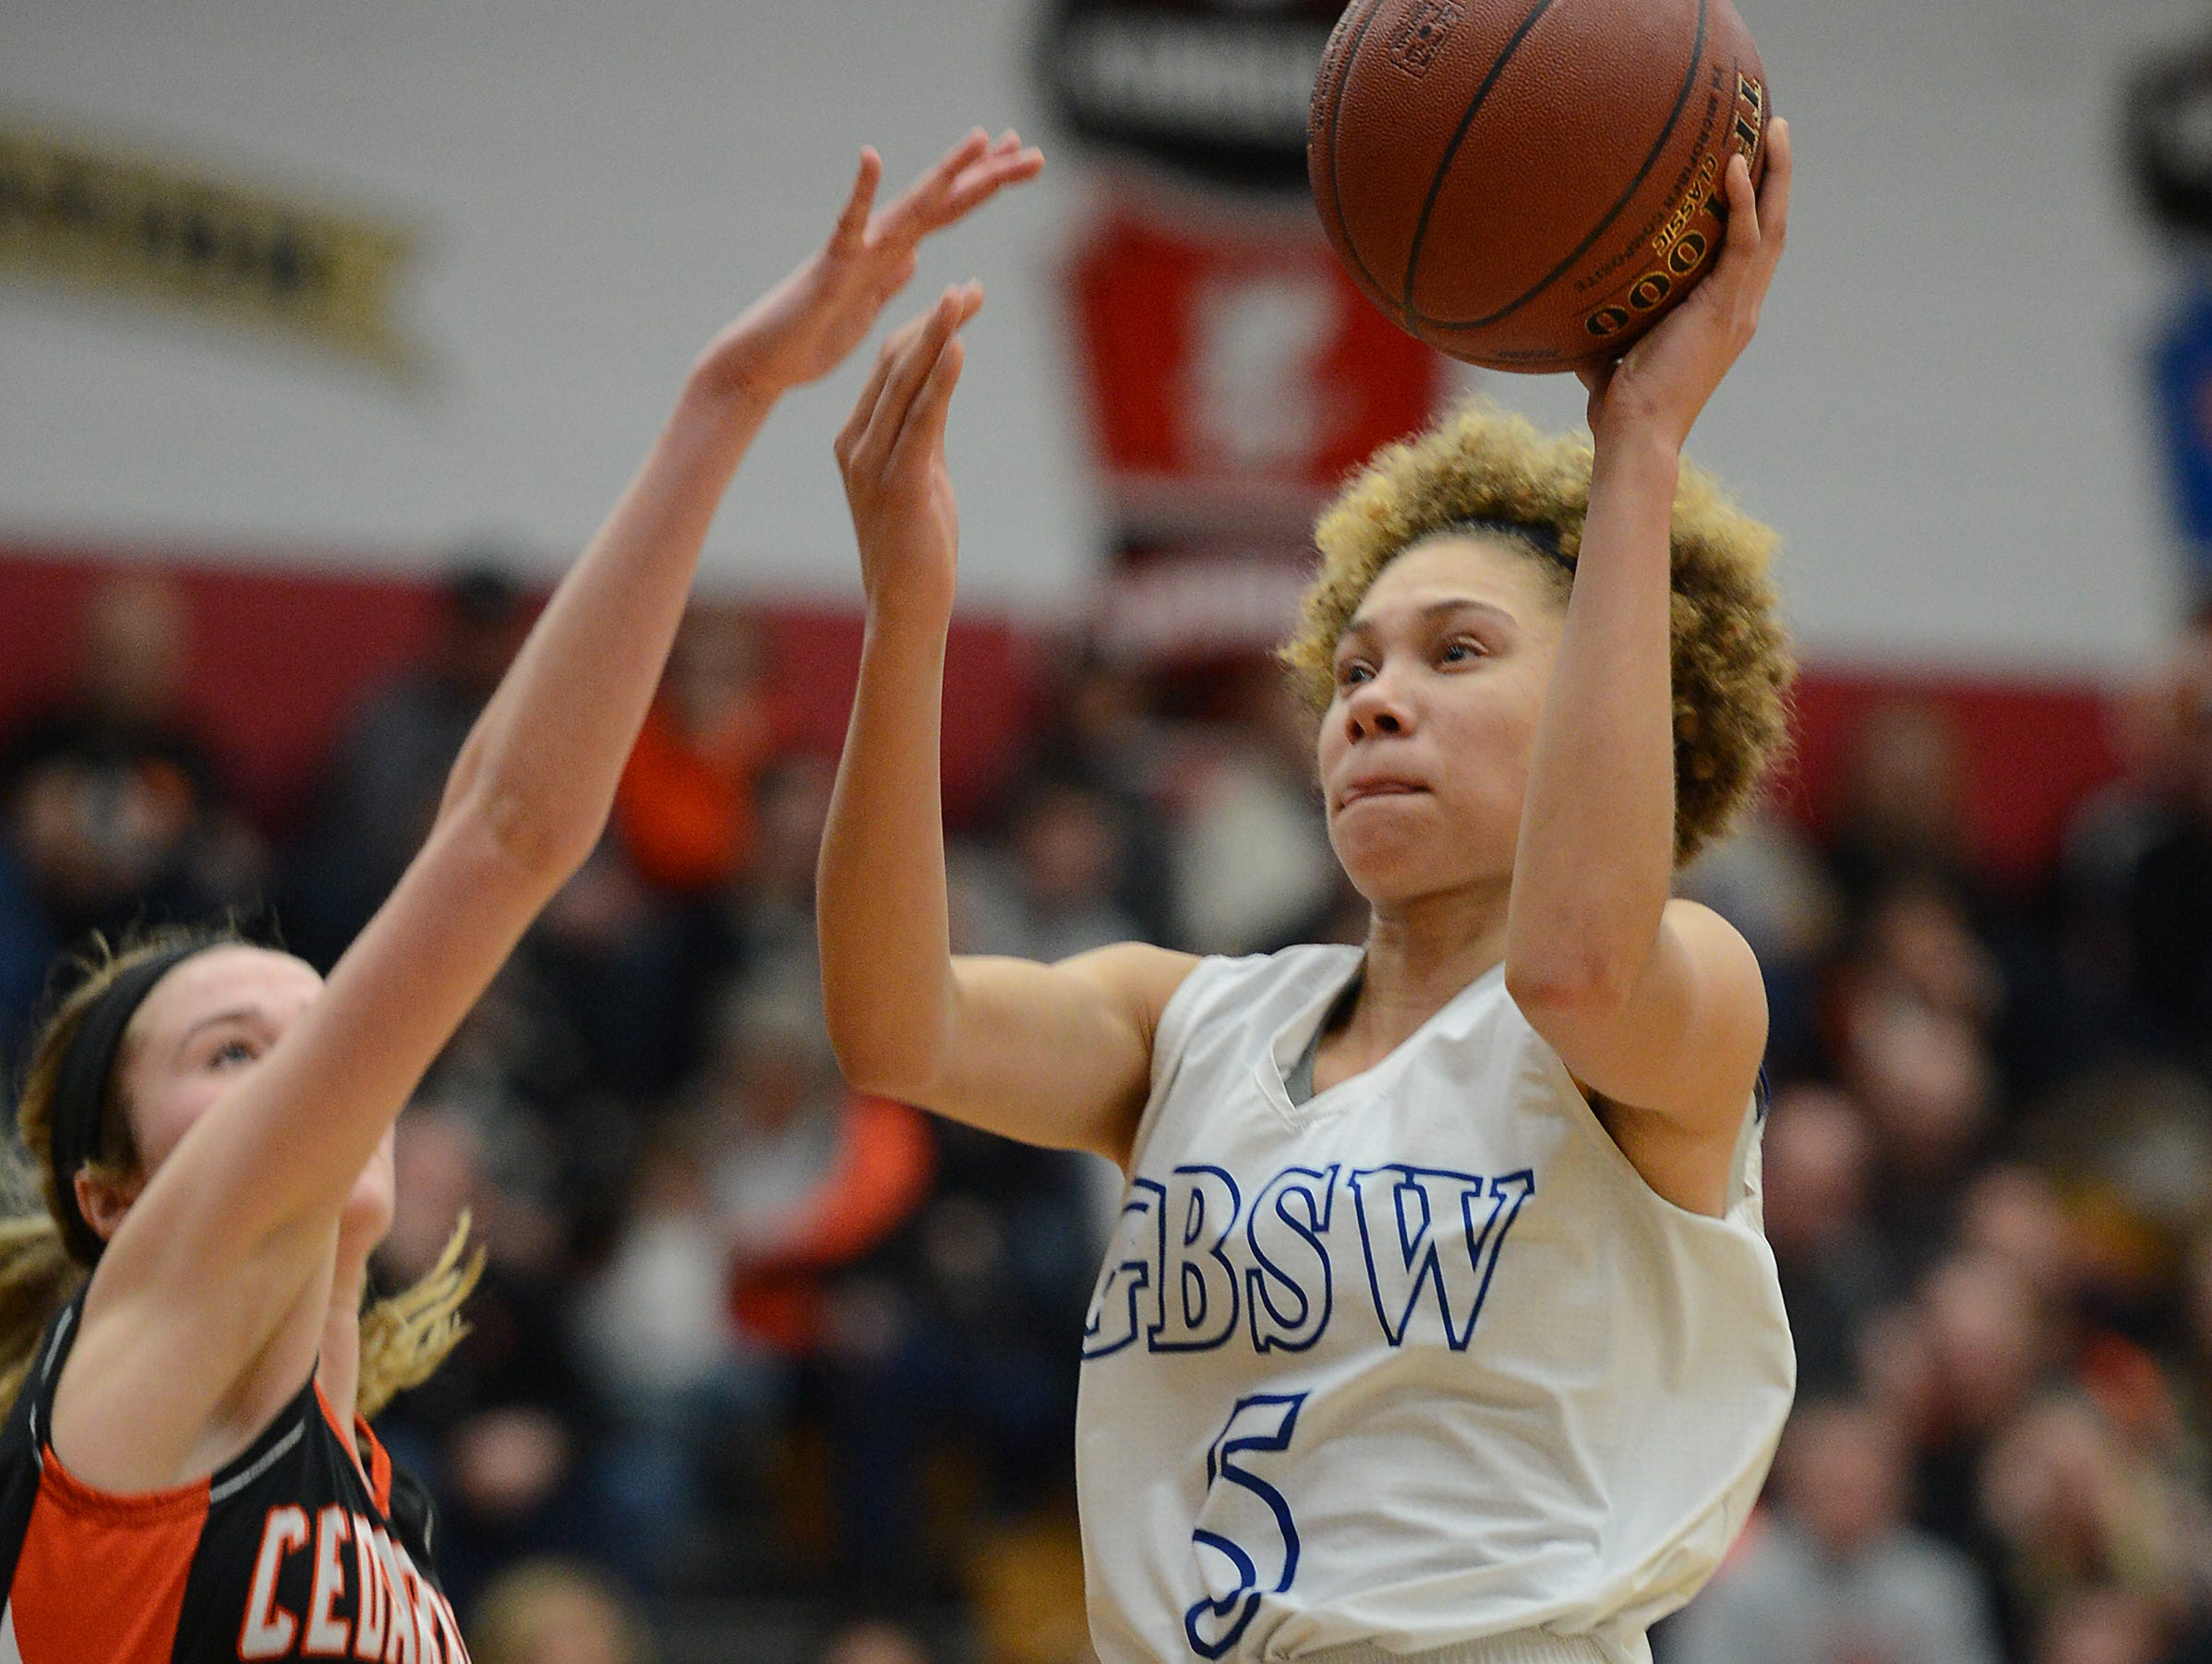 Green Bay Southwest HIgh School player Natisha Hiedeman (5) drives the lane in the D2 sectional finals against Cedarburg at Fond du Lac.